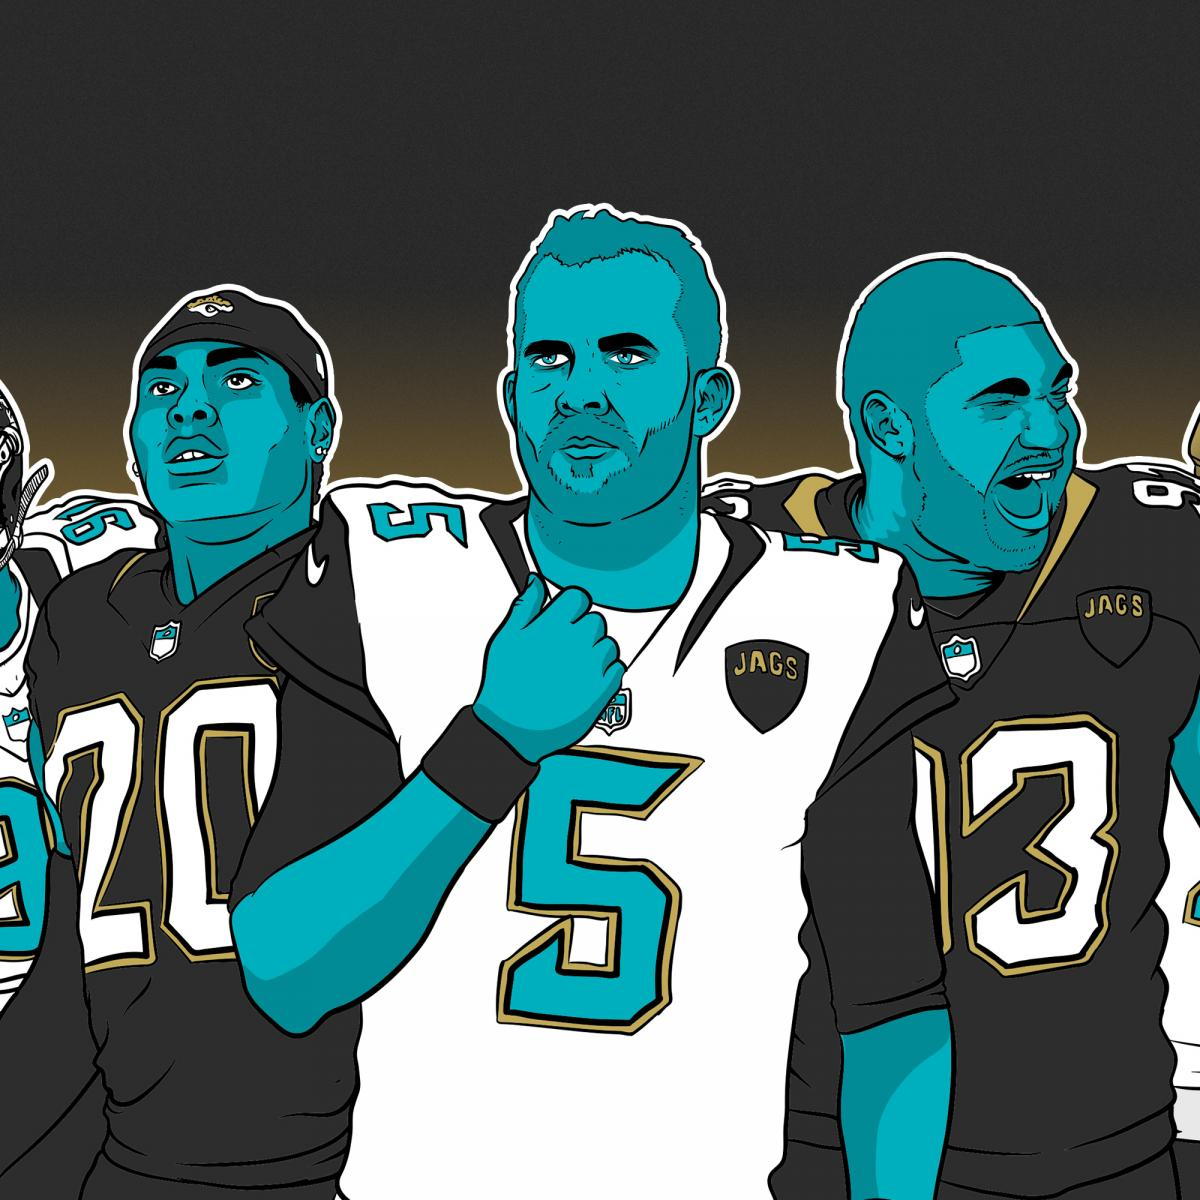 e5f189d7 Welcome to Sacksonville, Home of the NFL's New Nasty Boys | Bleacher ...